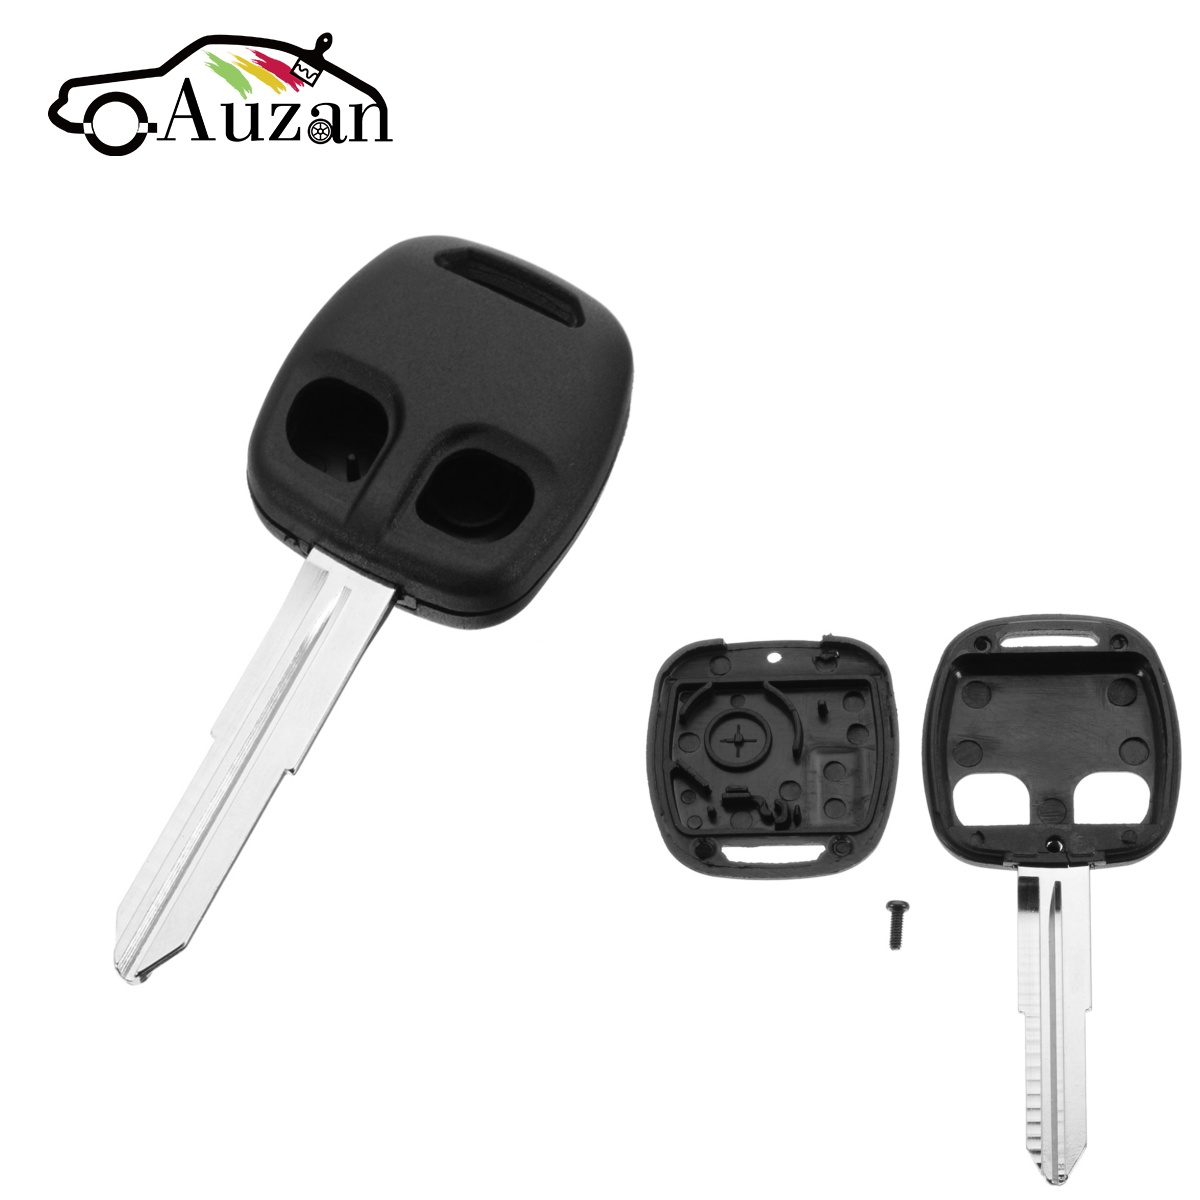 2 Button Car Remote <font><b>Key</b></font> Shell Case Fob MIT11R Blade for <font><b>MITSUBISHI</b></font> Lancer Evo <font><b>L200</b></font> Shogun Pajero <font><b>Key</b></font> <font><b>Replacement</b></font> image